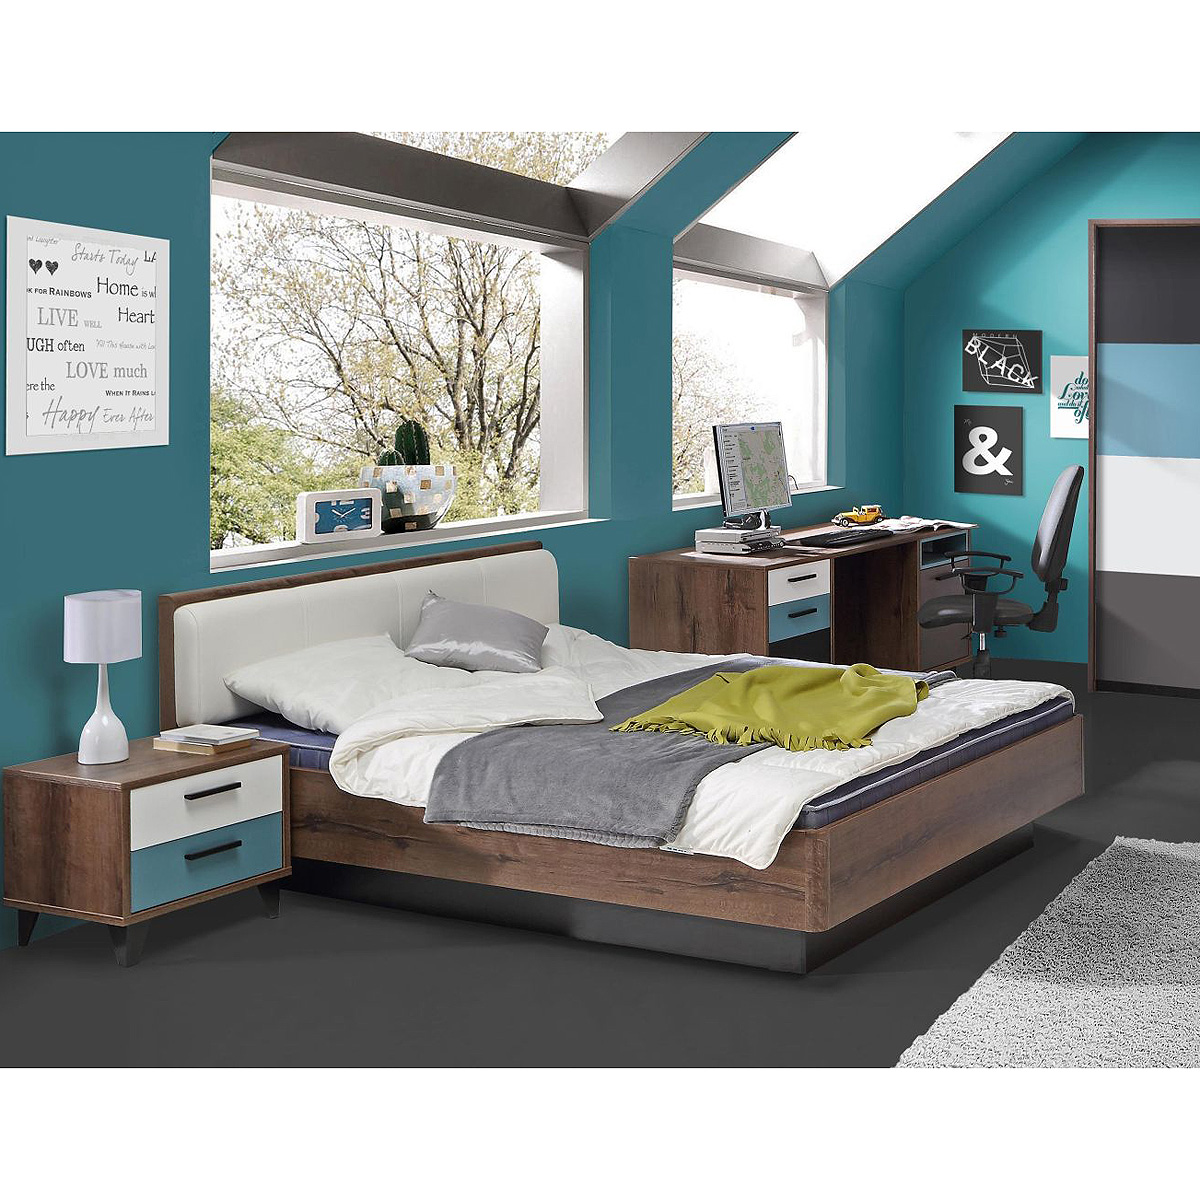 bett raven jugendzimmerbett doppelbett in schlammeiche und wei 140x200 ebay. Black Bedroom Furniture Sets. Home Design Ideas